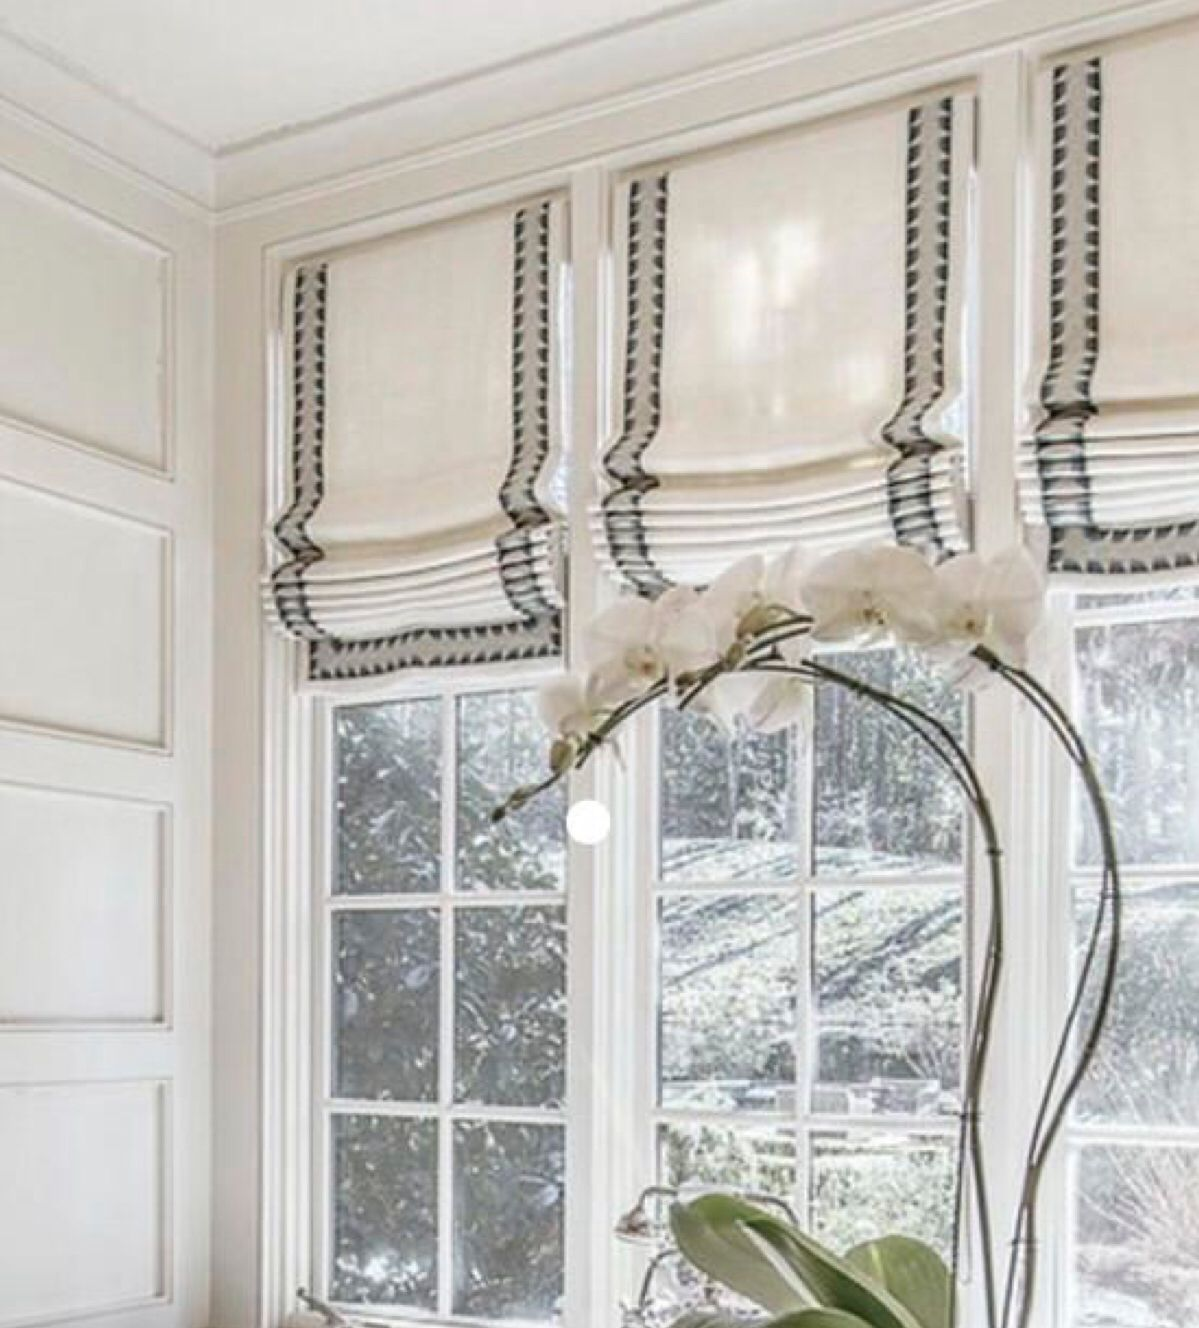 The Beauty Of Roman Shades Is Flexibility With Fabric And Their